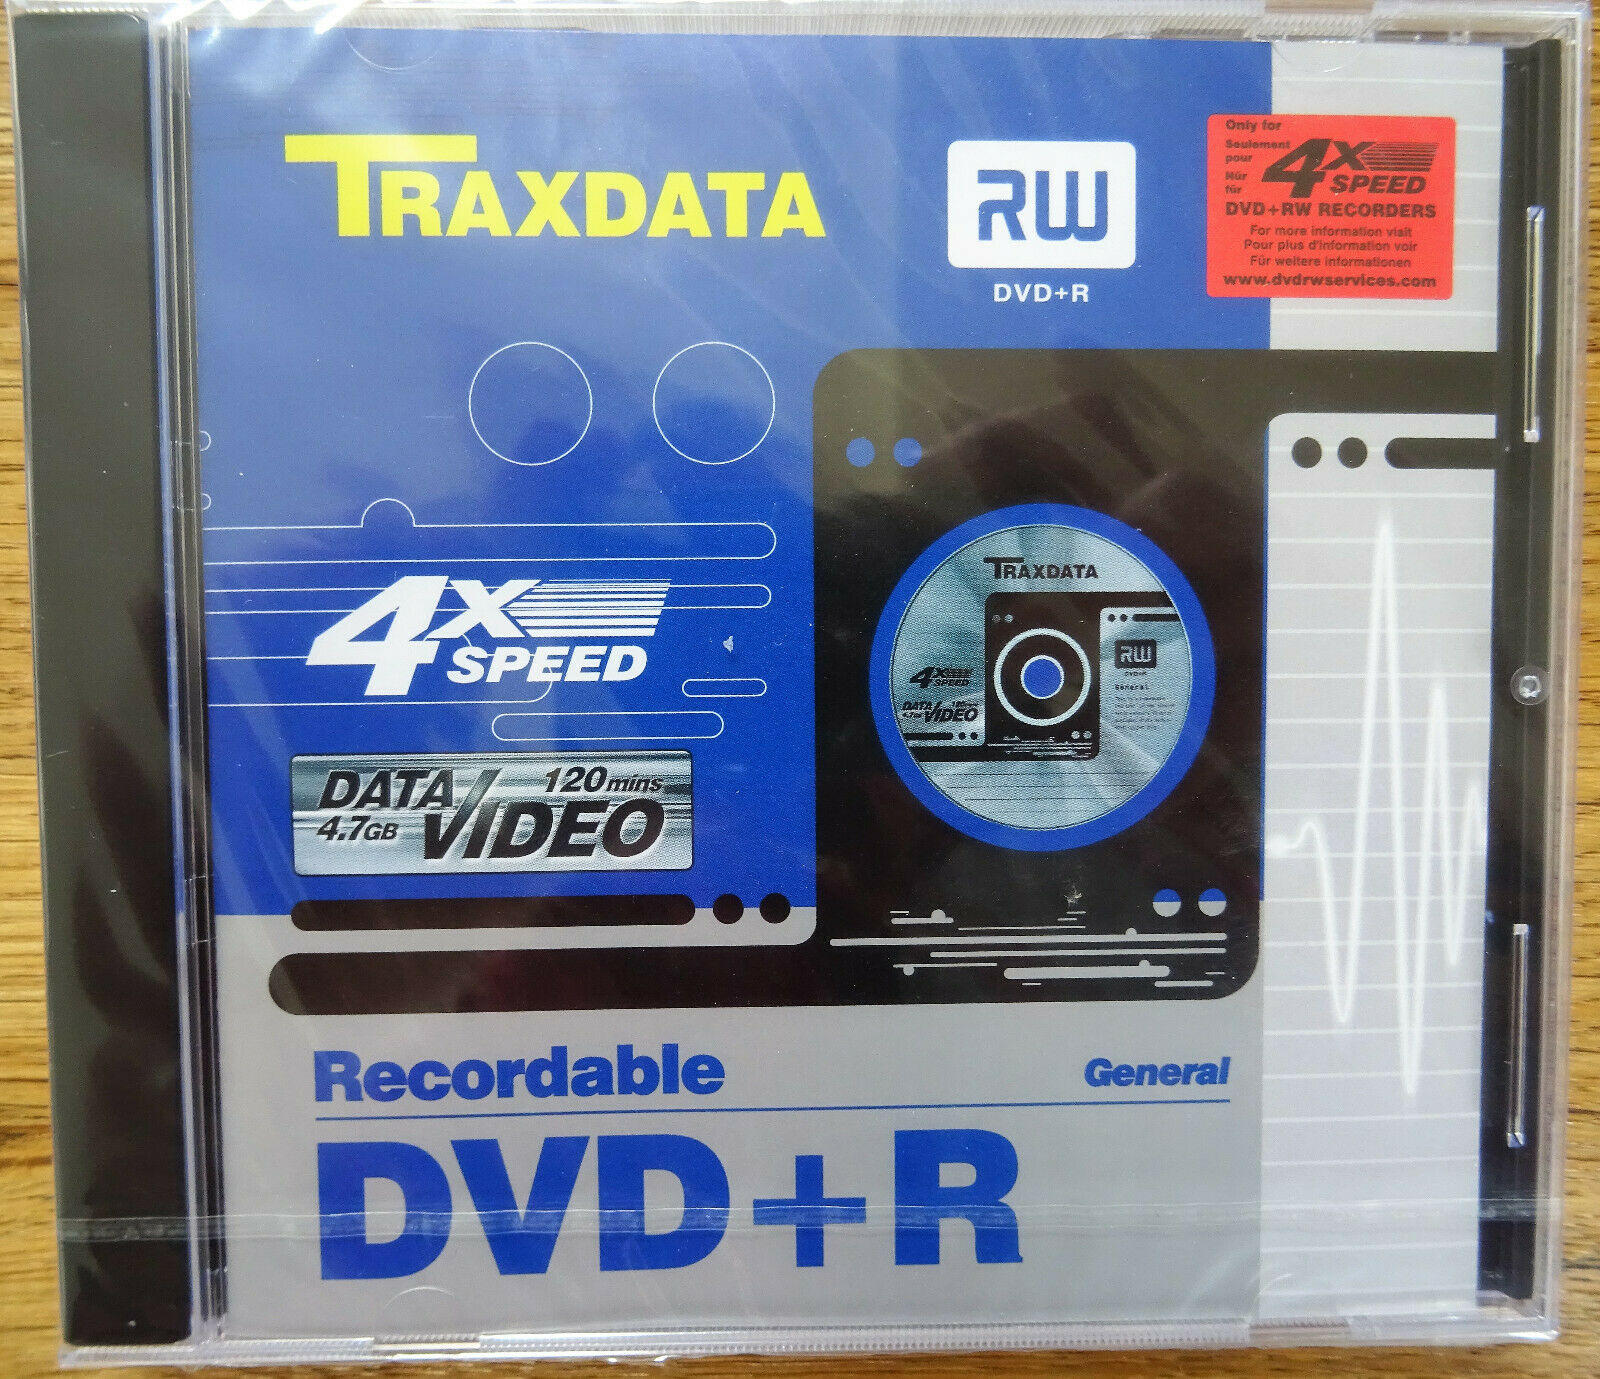 Traxdata DVD-Rohling 4.7 GB 120 Min. 4x Speed DVD+R Rohling Leer-DVD Jewel-Case